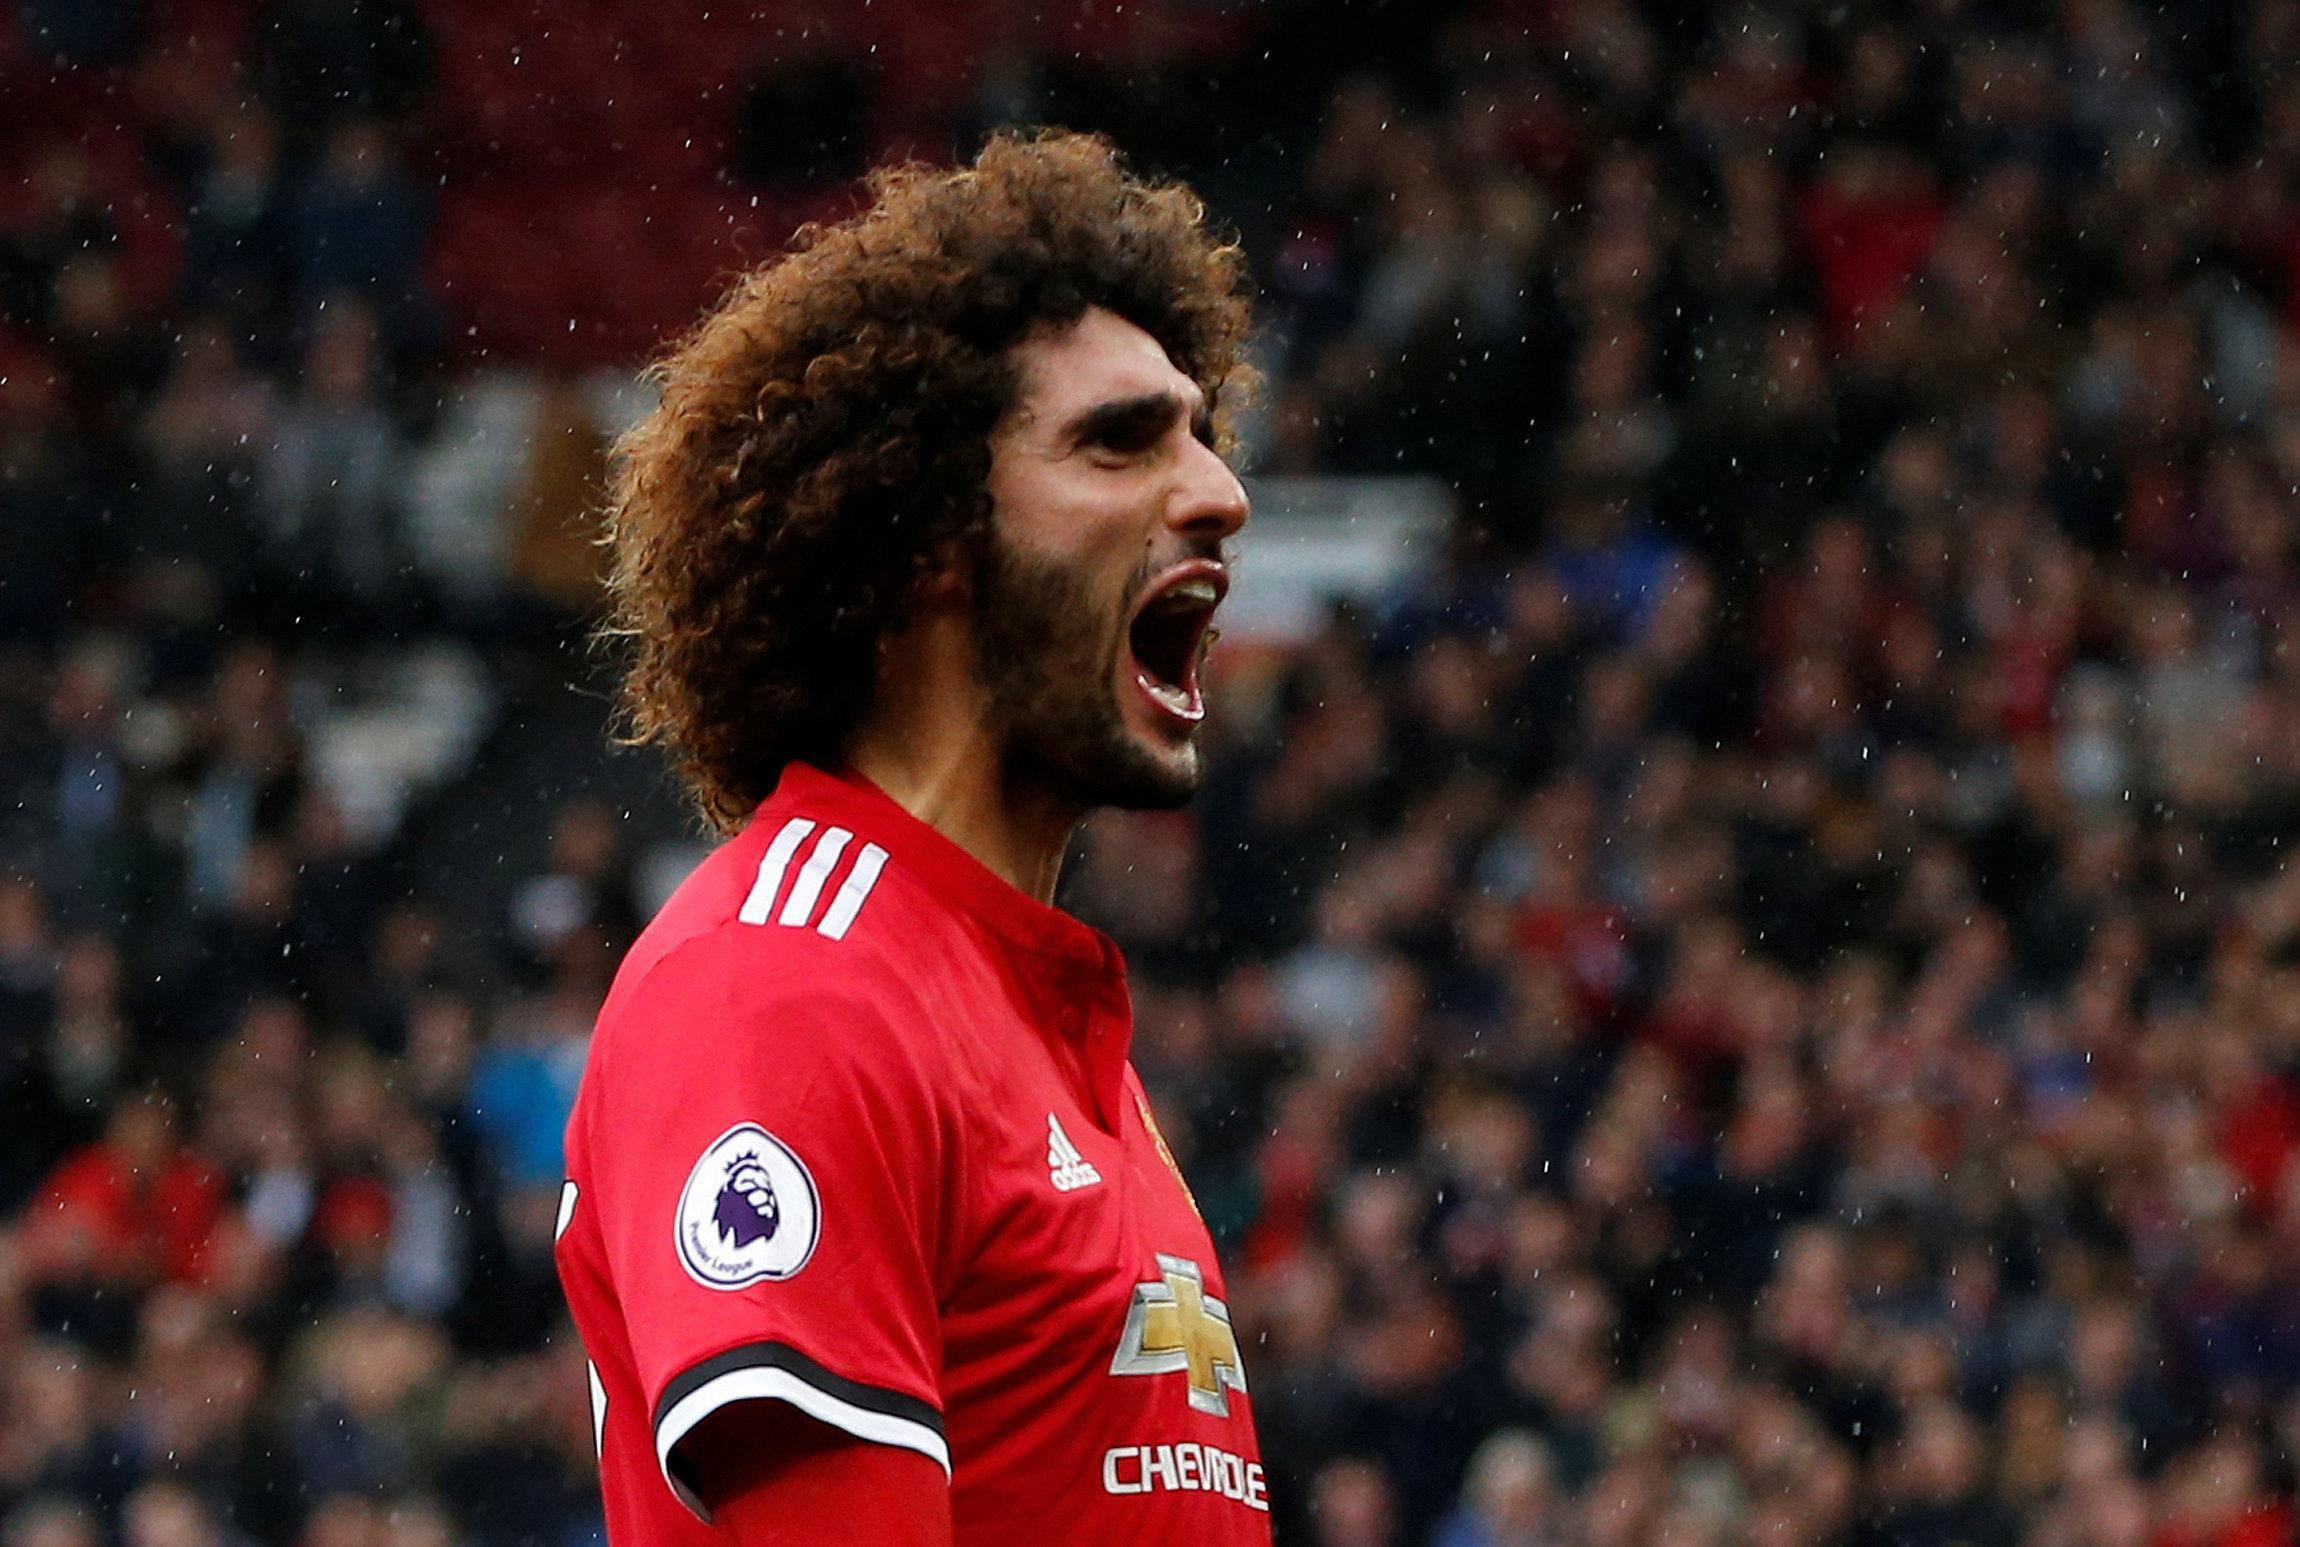 Marouane Fellaini had been in superb form for Man United this season